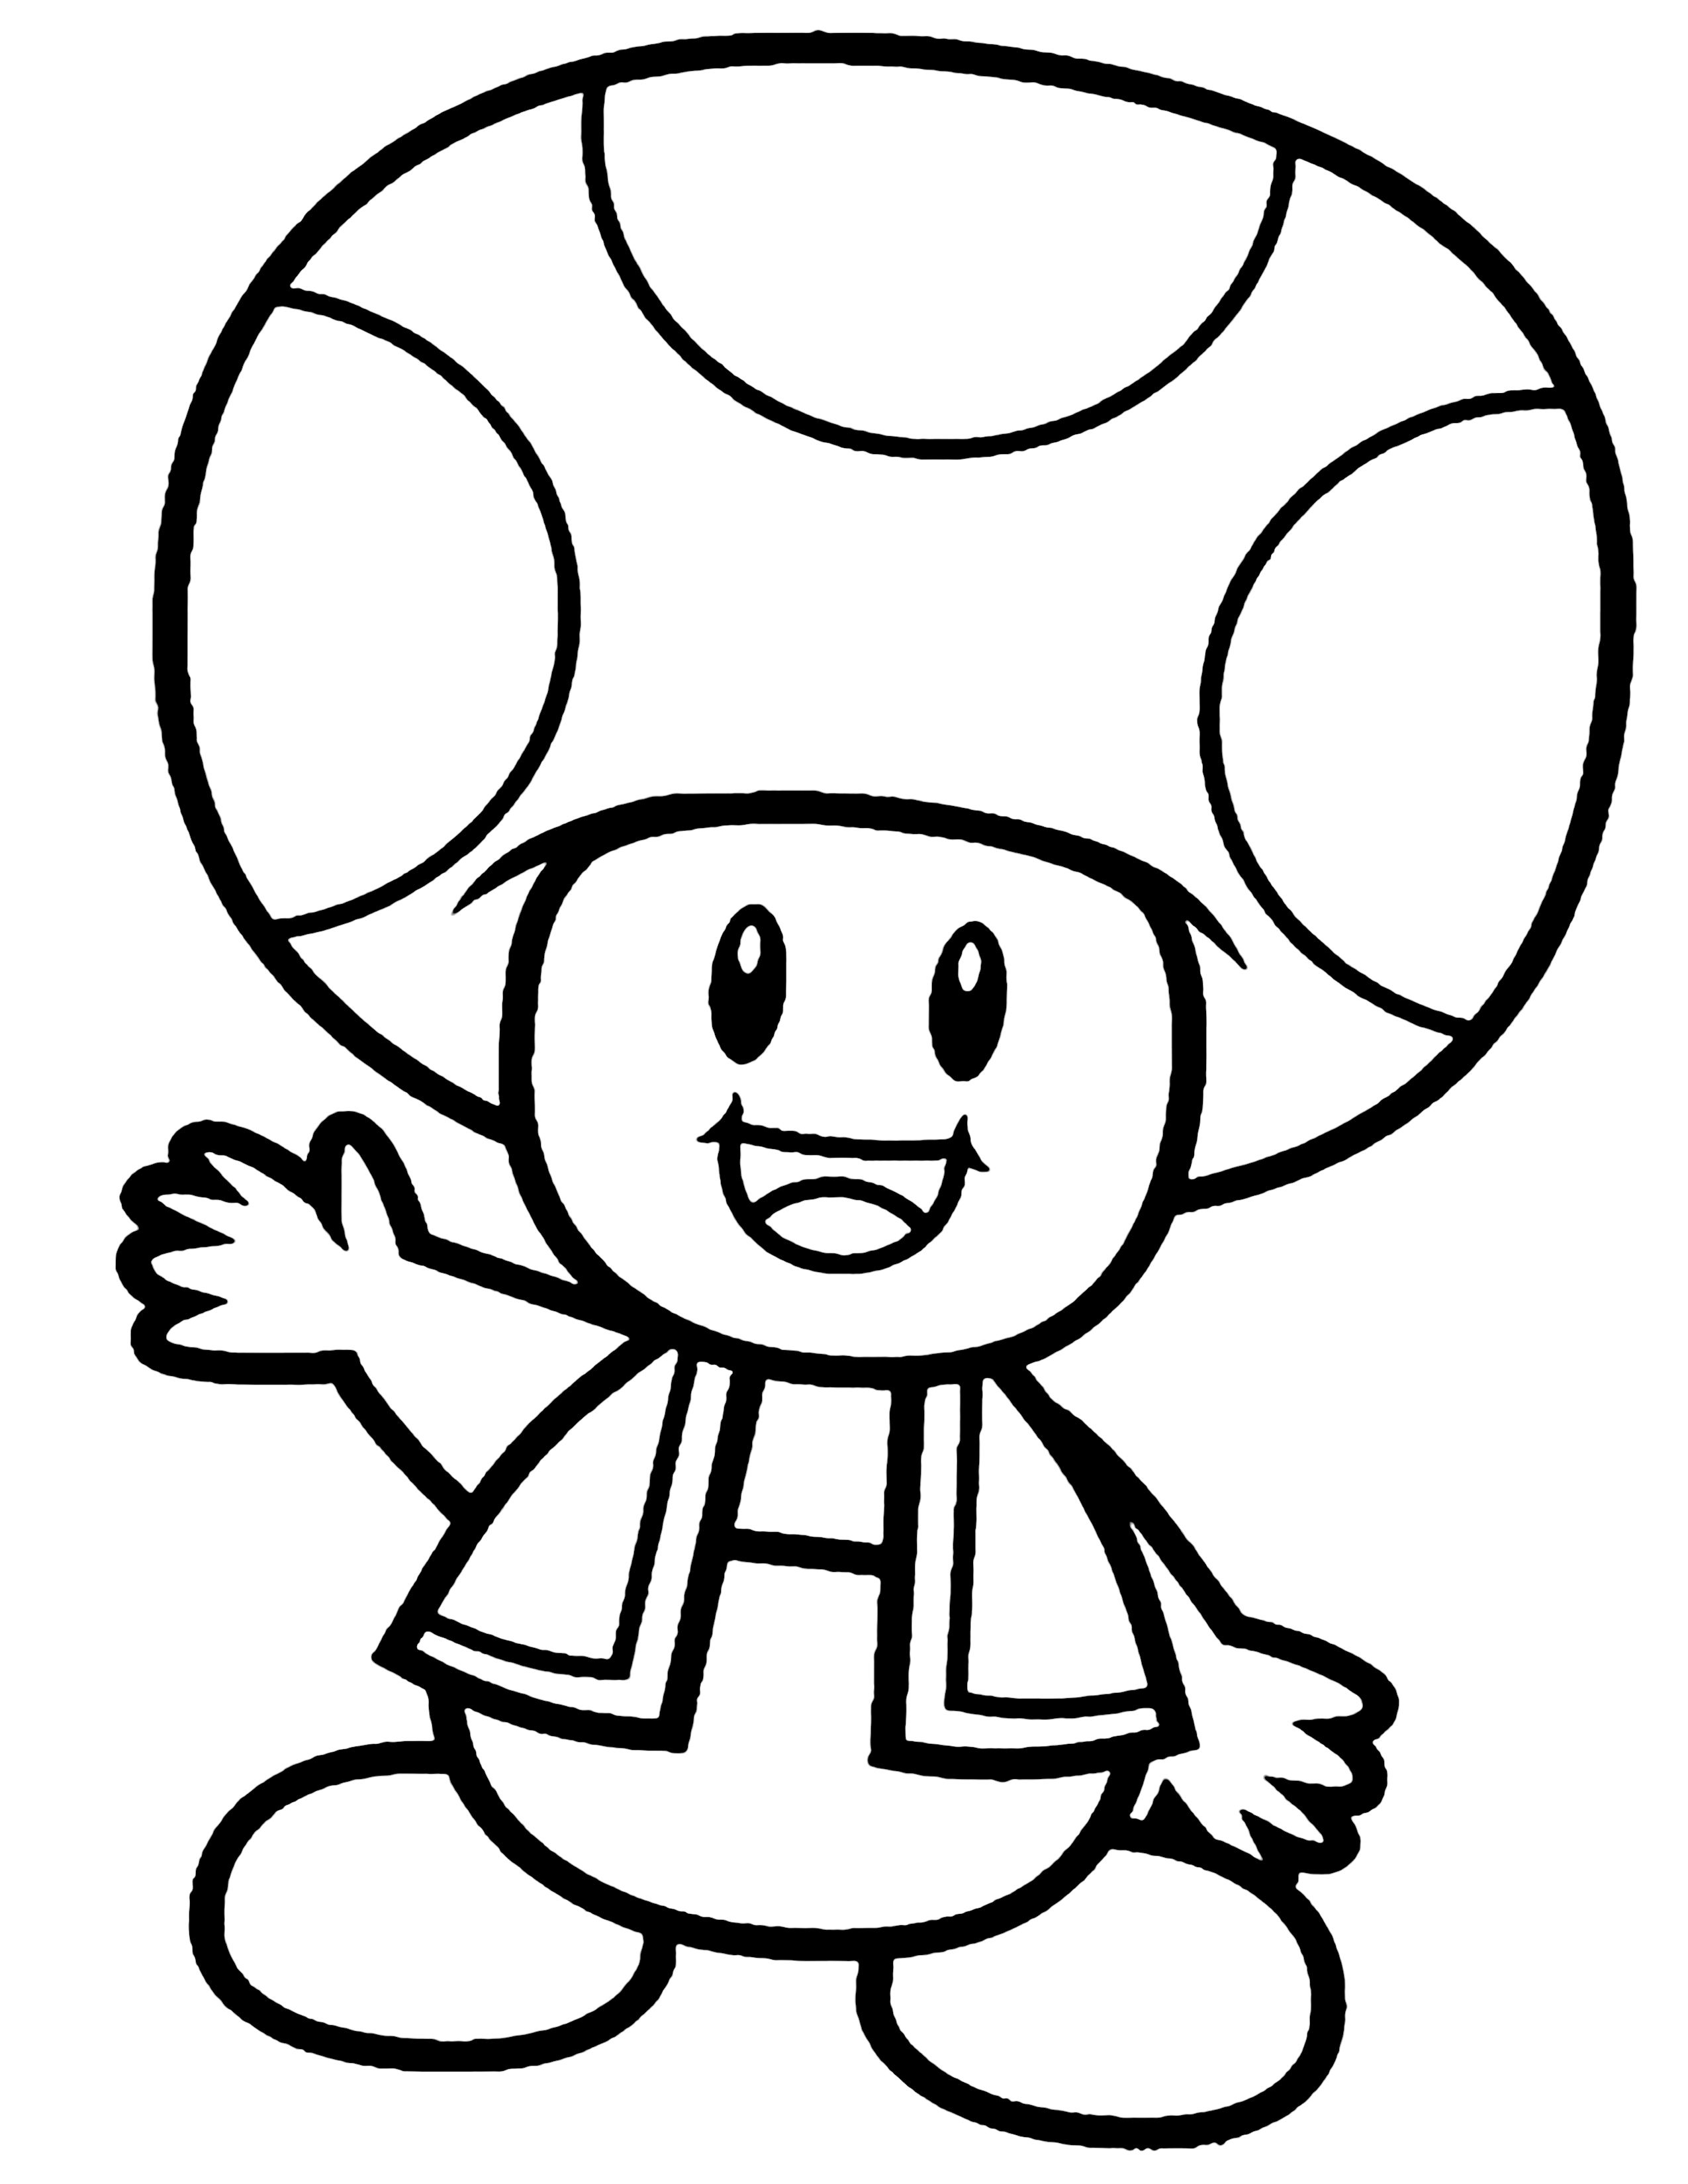 40 Mario Coloring Pages For Kids Super Mario Coloring Pages Mario Coloring Pages Coloring Pages